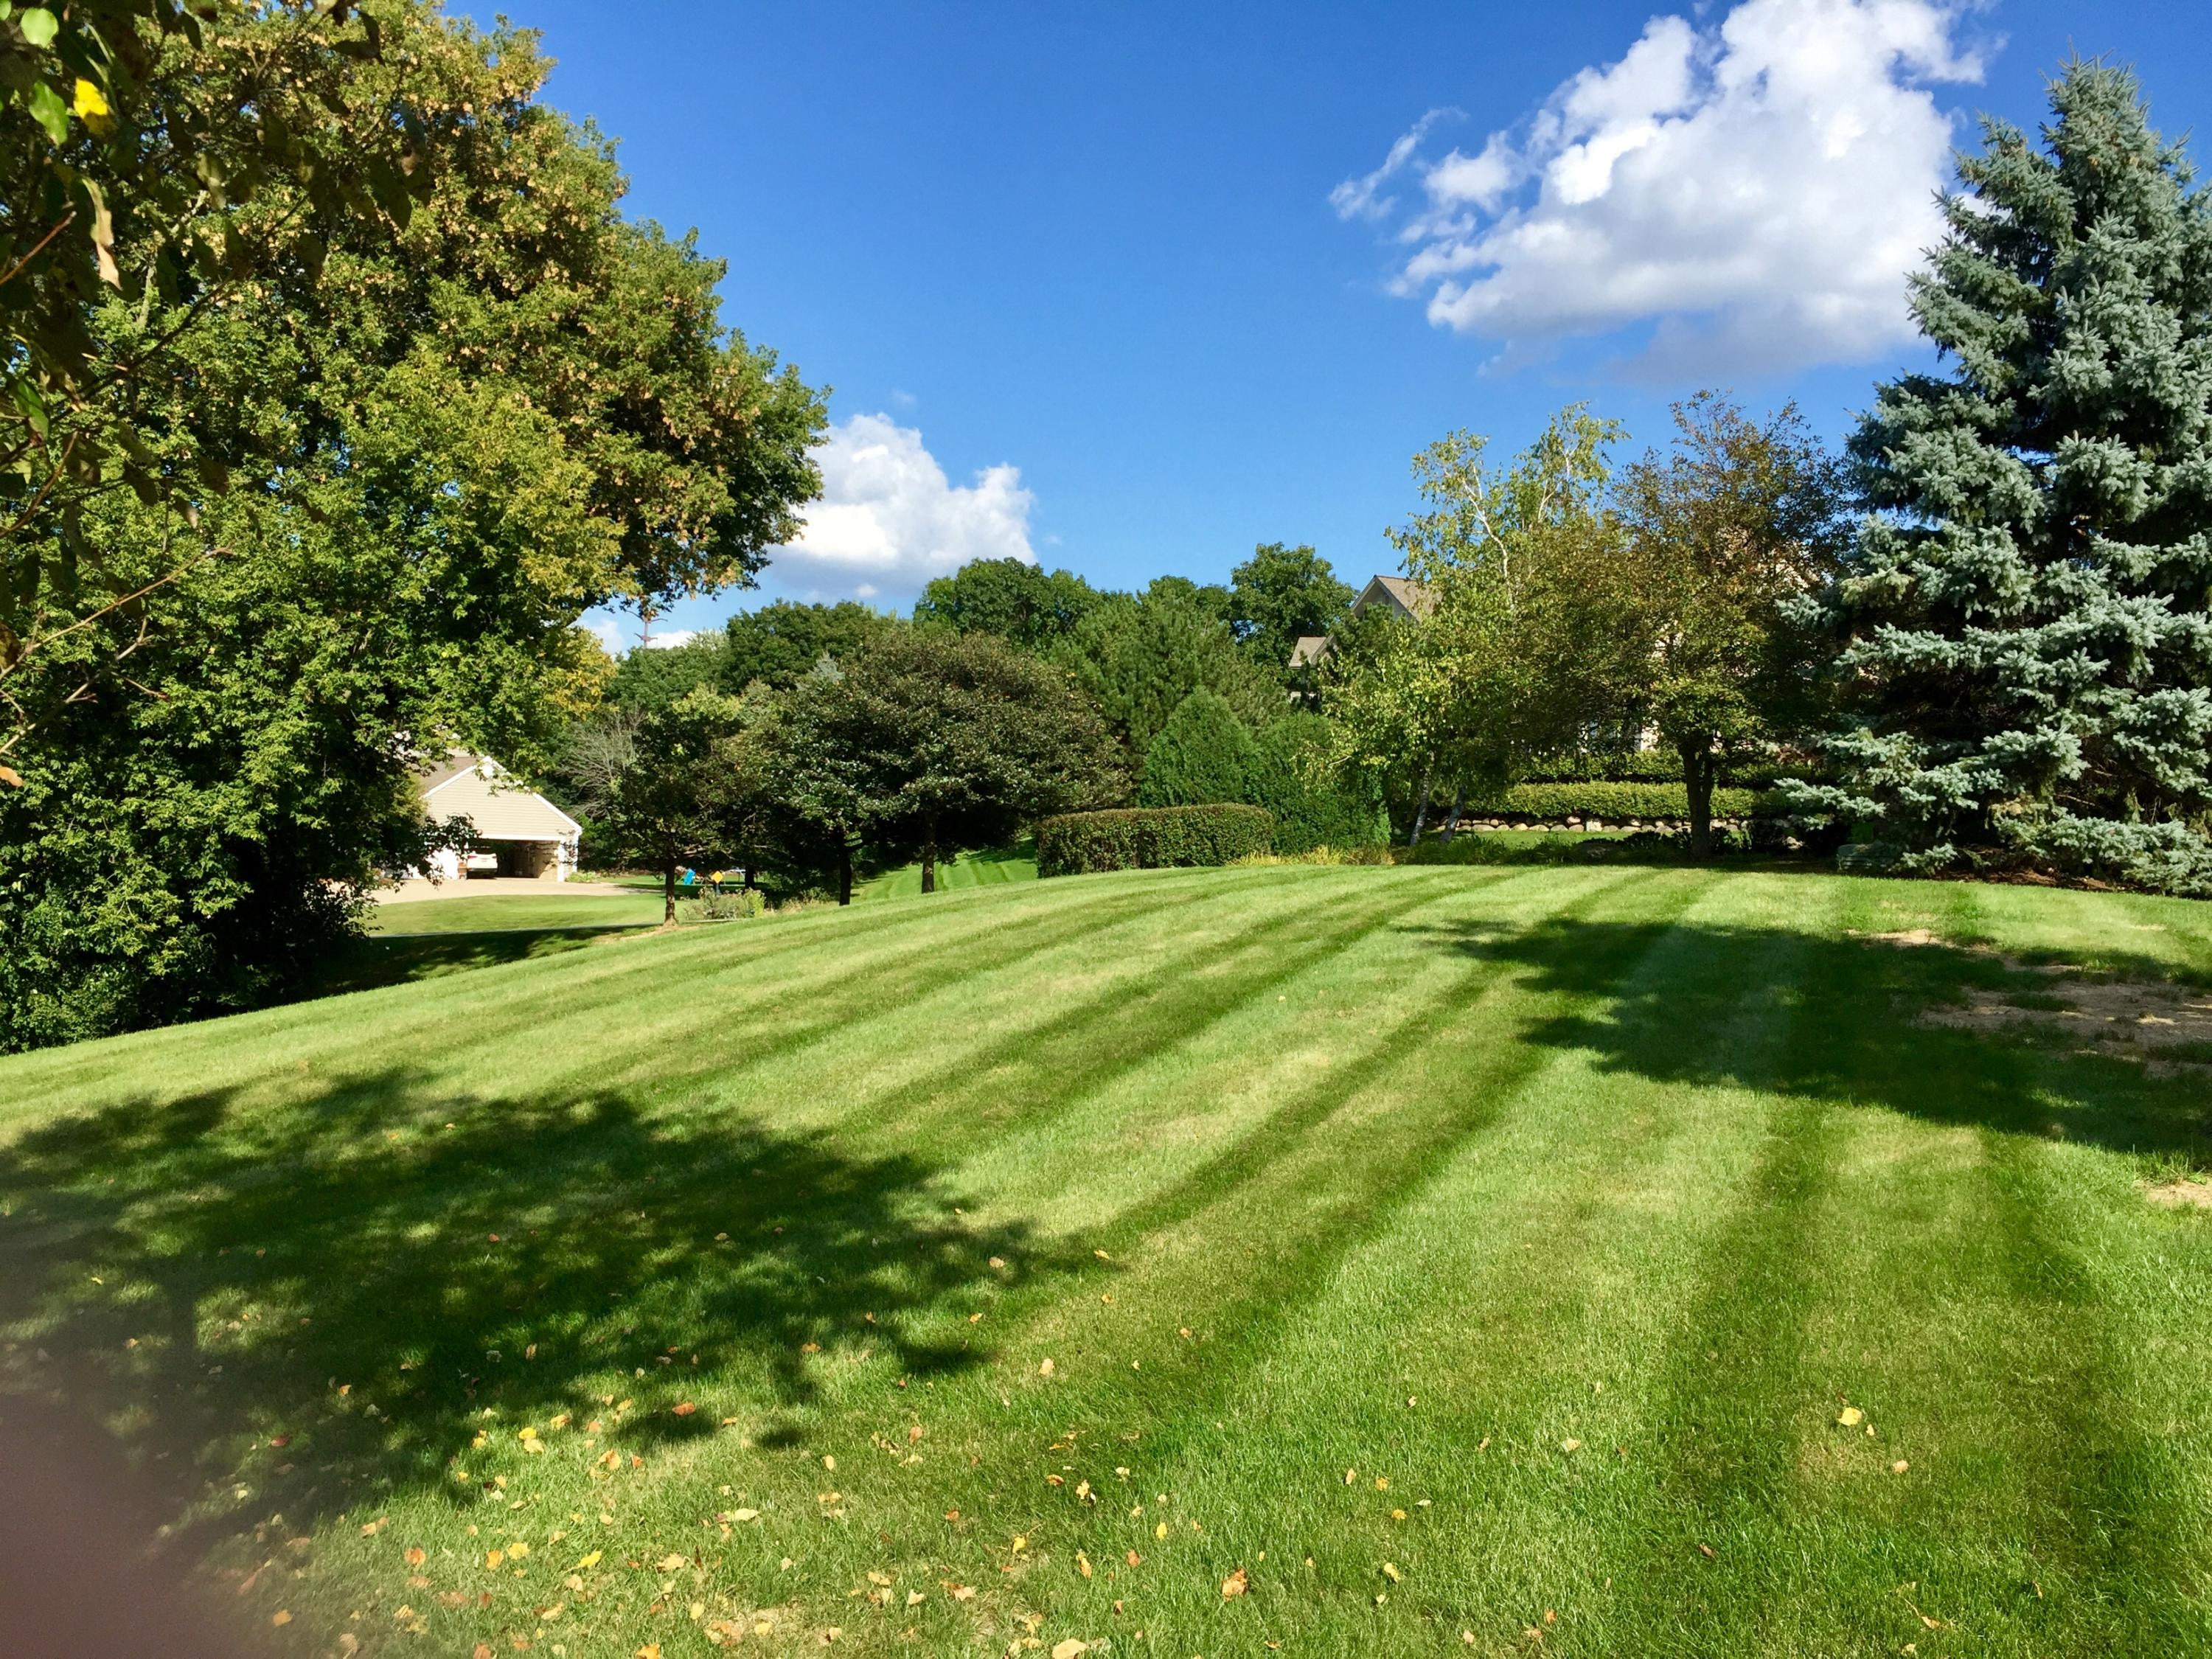 N14W30152 High Ridge Rd, Delafield, Wisconsin 53072, 3 Bedrooms Bedrooms, 8 Rooms Rooms,2 BathroomsBathrooms,Condominiums,For Sale,High Ridge Rd,2,1615998